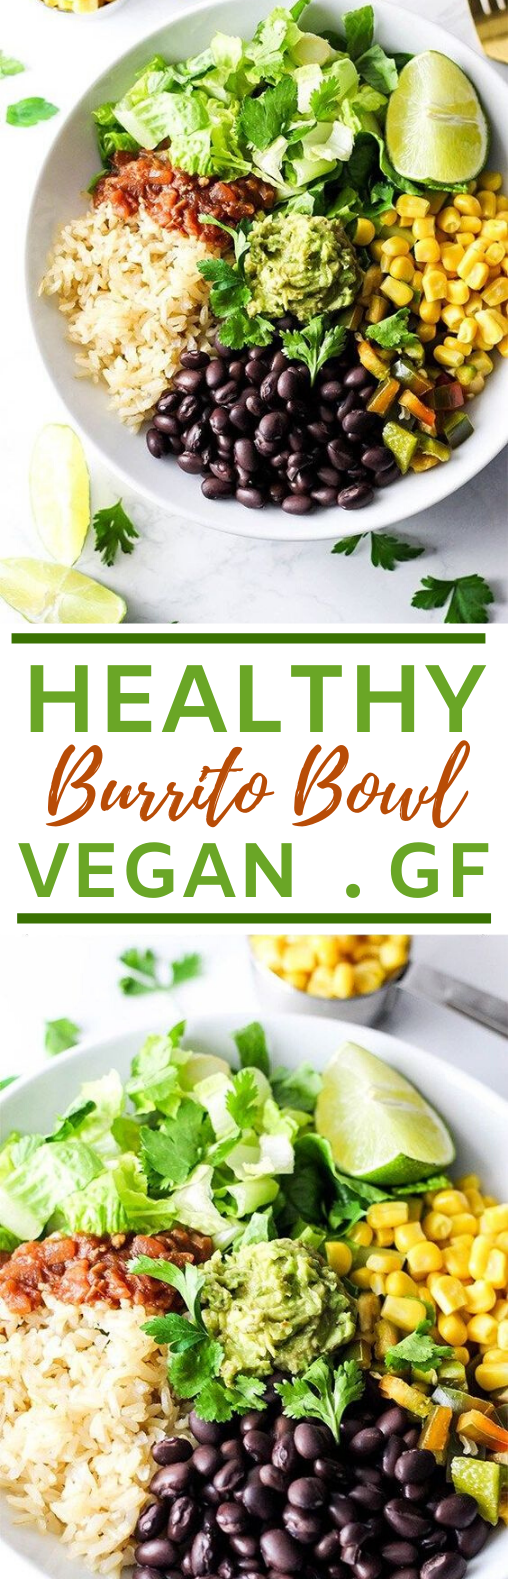 Vegan Burrito Bowl #vegan #dinner #plantbased #glutenfree #healthy